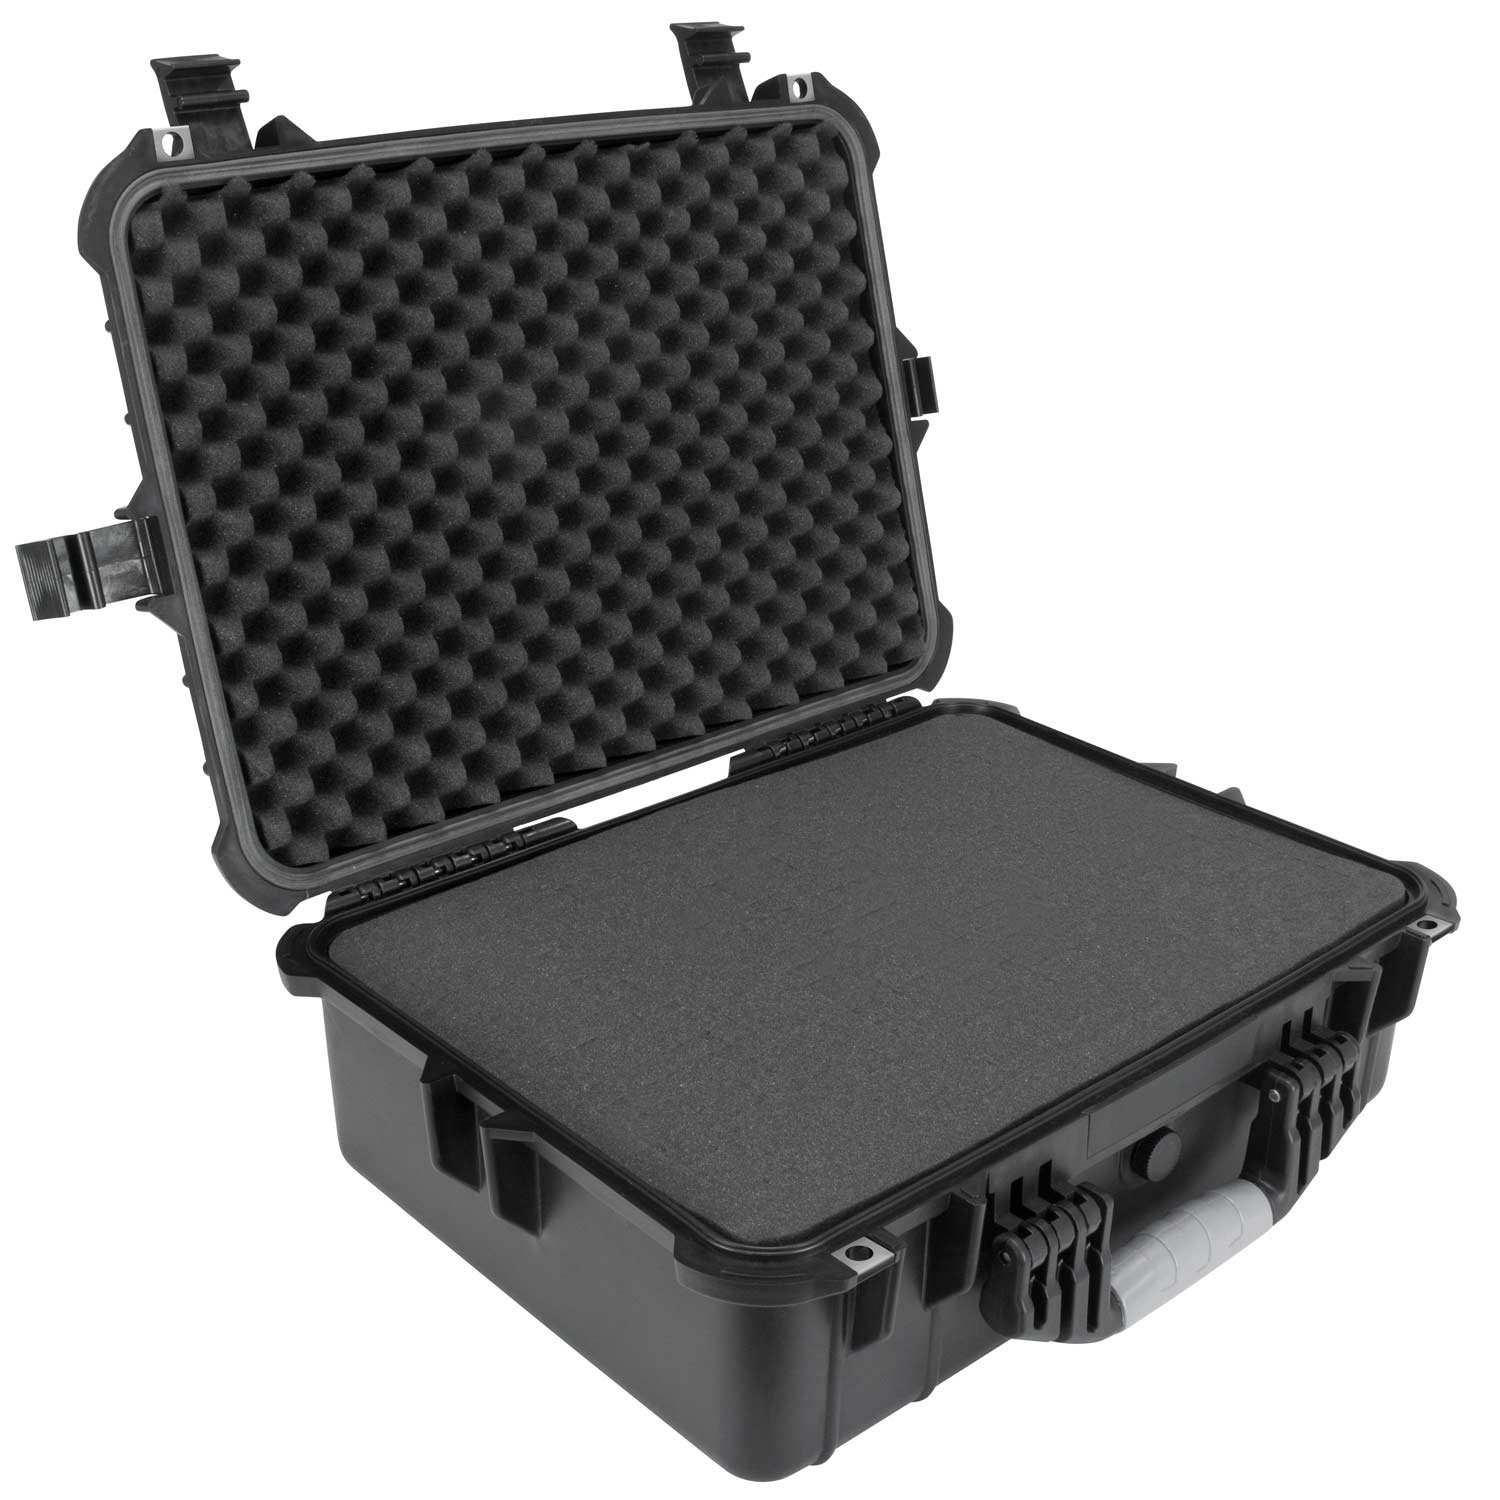 Elkton Outdoors Hard Gun Case: Fully Customizable Pistol Case: Holds 5 Handguns and 10 Magazines: Crush Resistant & Waterproof! by Elkton Outdoors (Image #6)